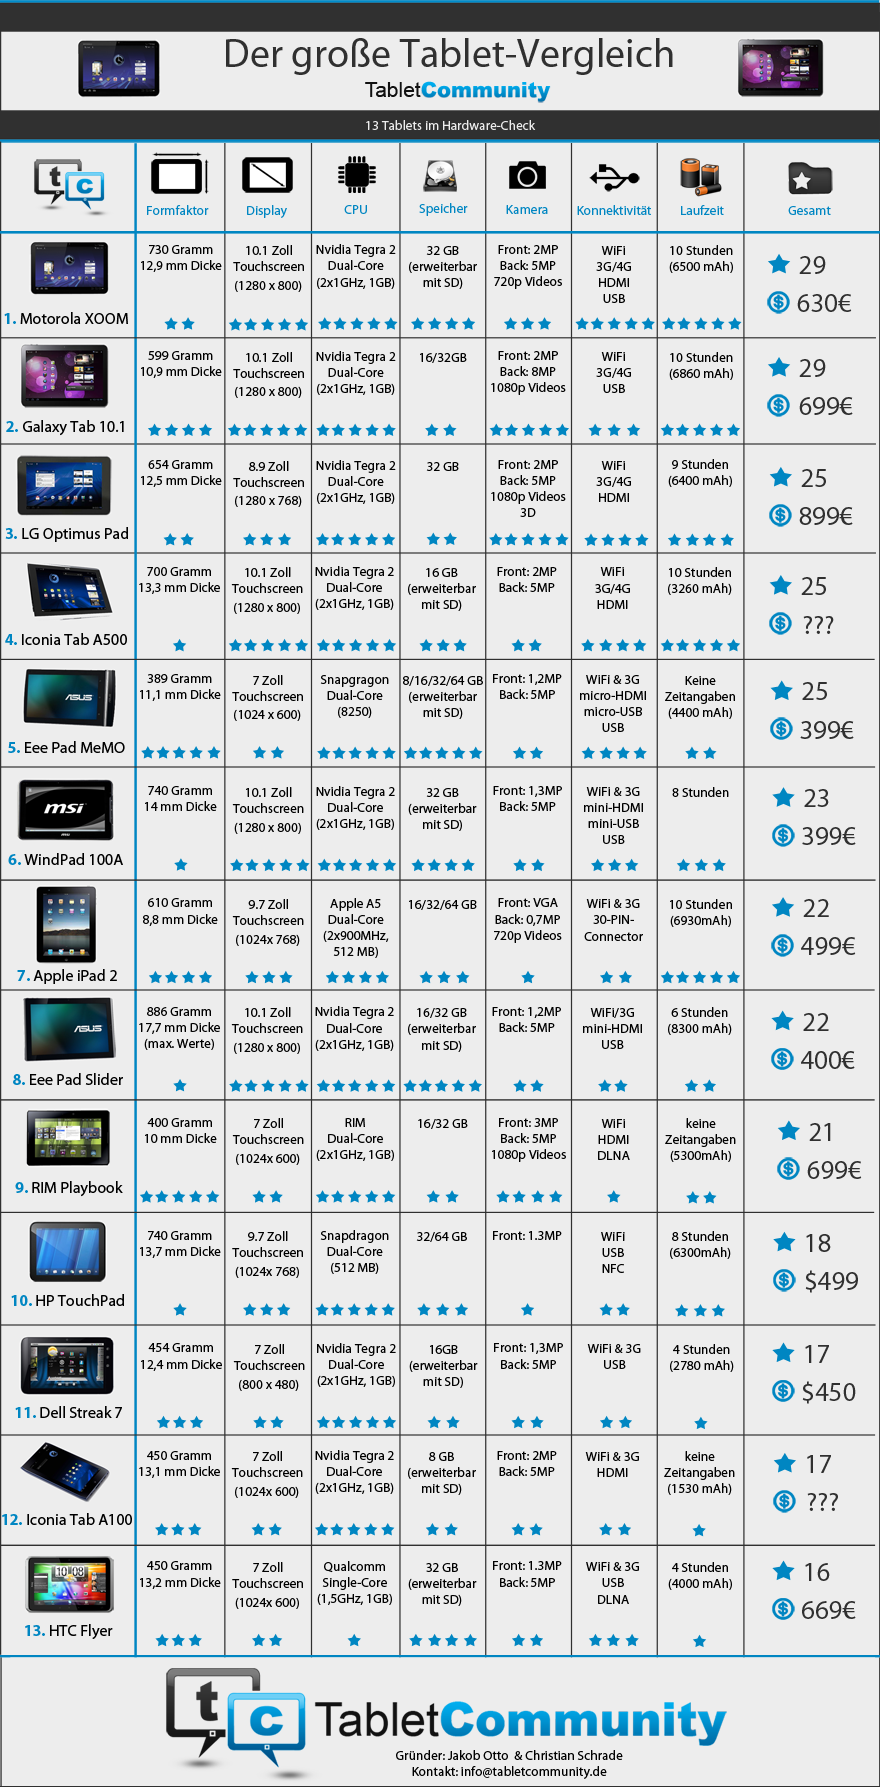 galaxy tab 10 1 vs ipad 2 vs motorola xoom vergleich von 13 tablets infografik tablet blog. Black Bedroom Furniture Sets. Home Design Ideas